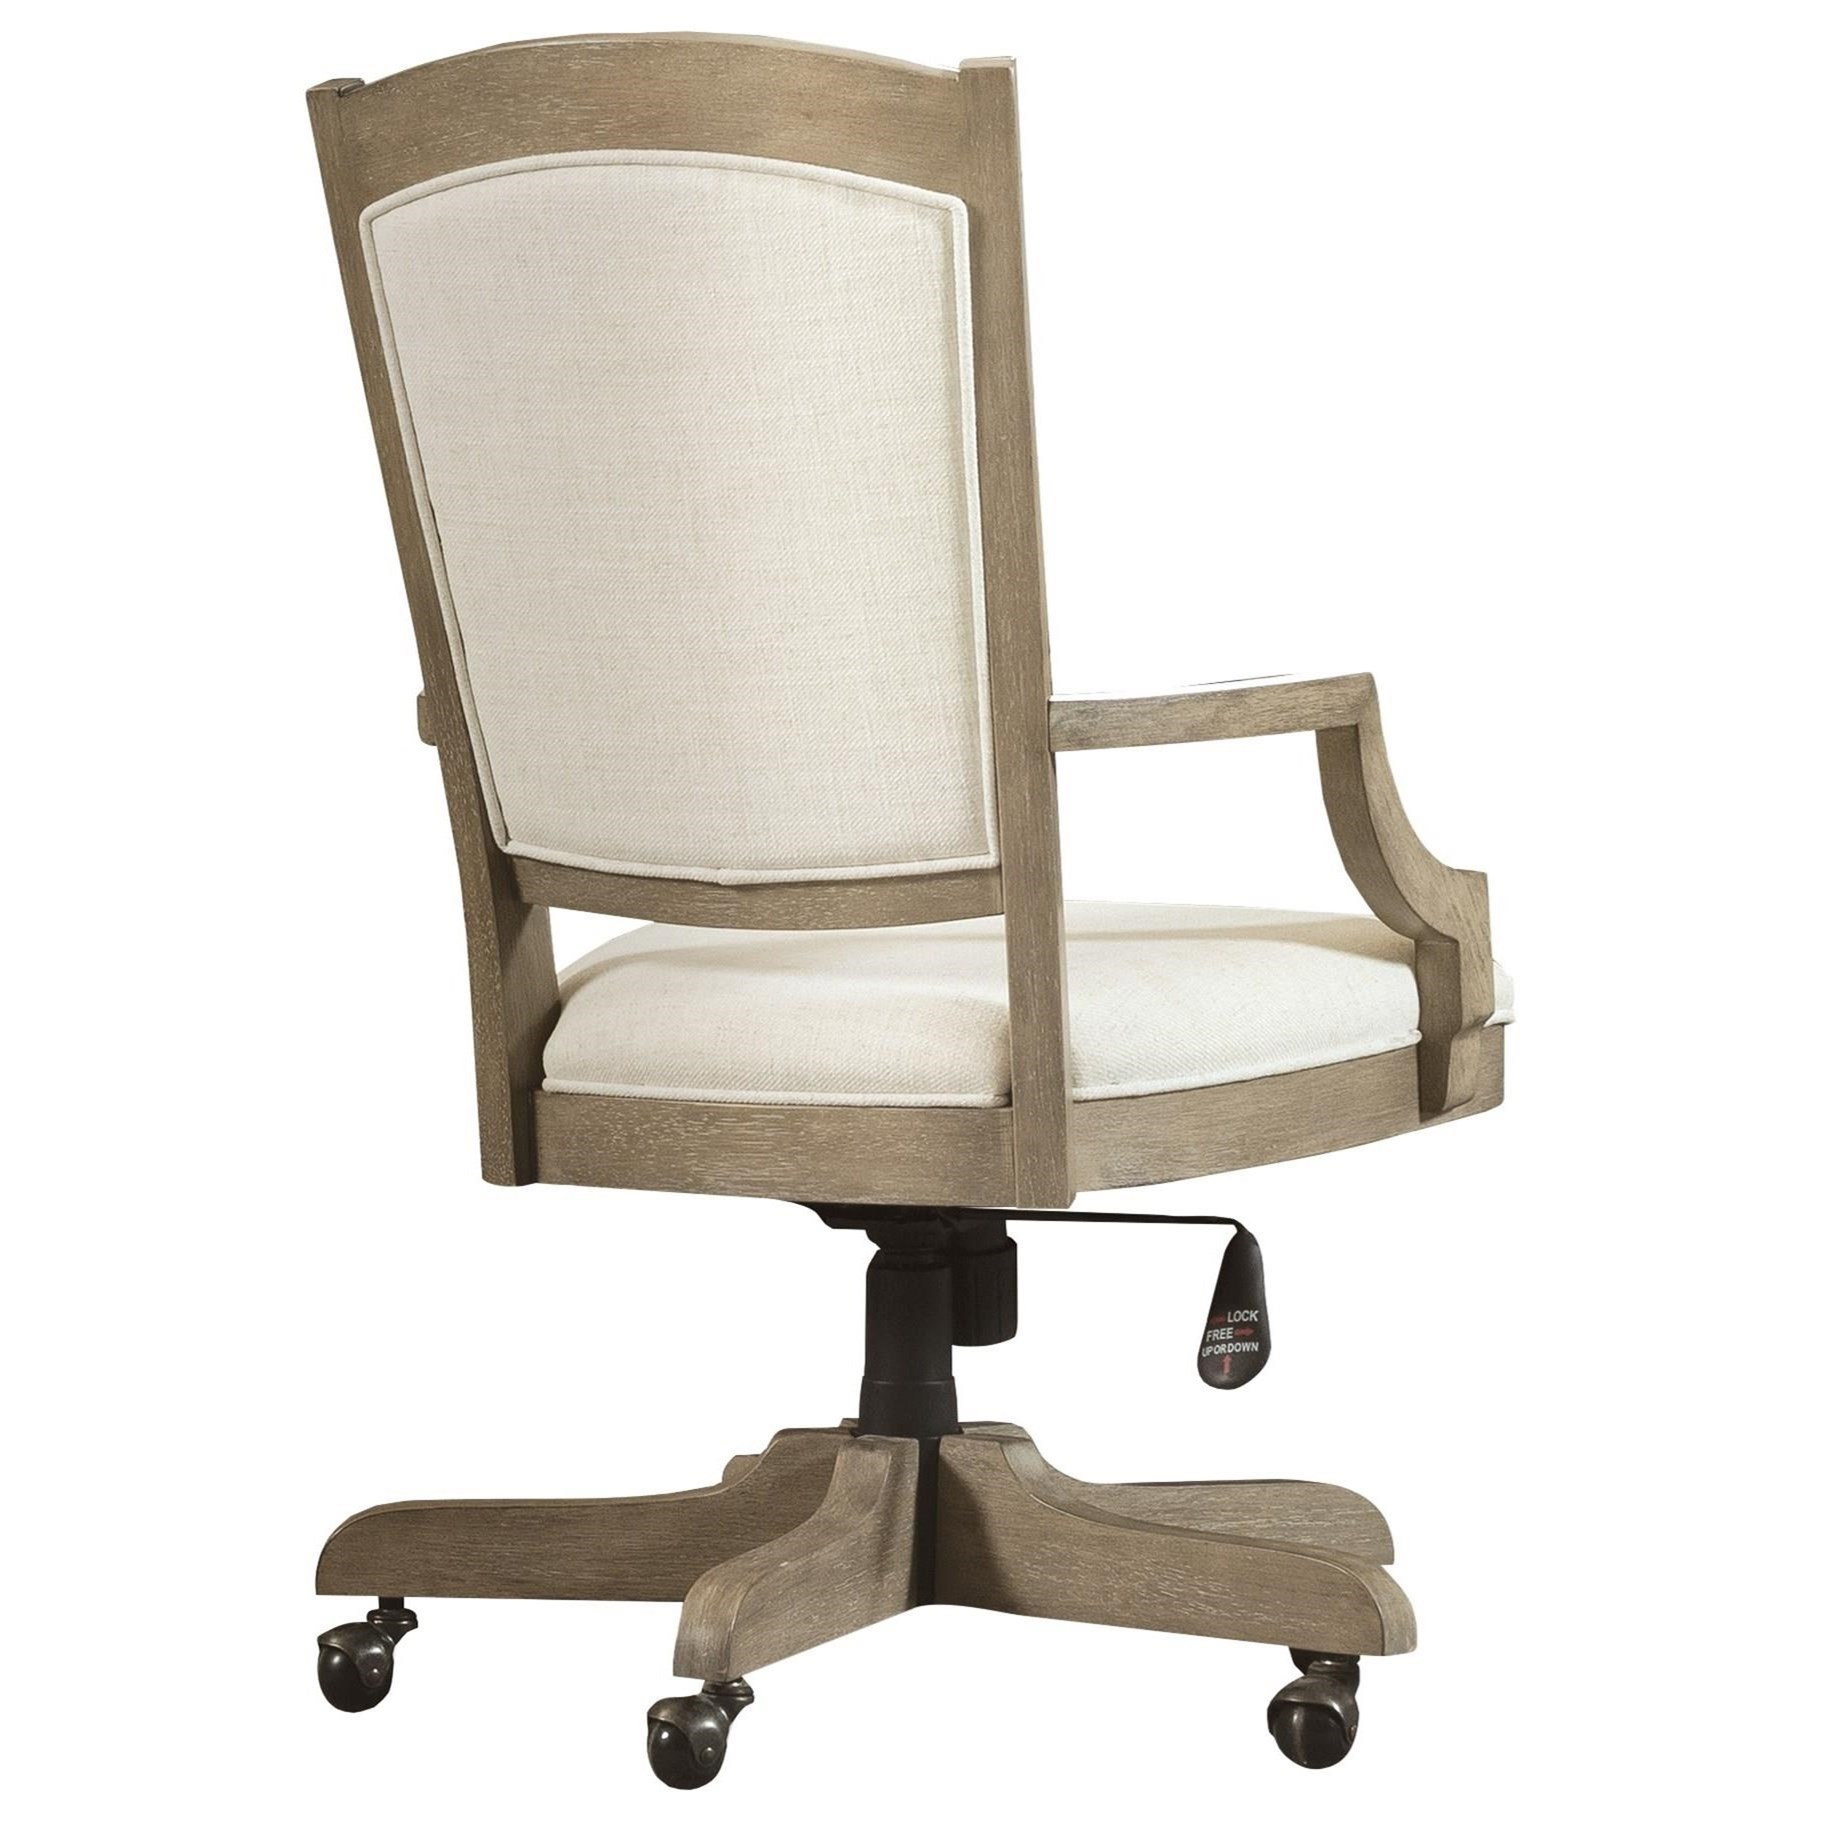 Image of: Riverside Furniture Myra 59428 Upholstered Desk Chair With Casters Dunk Bright Furniture Office Task Chairs